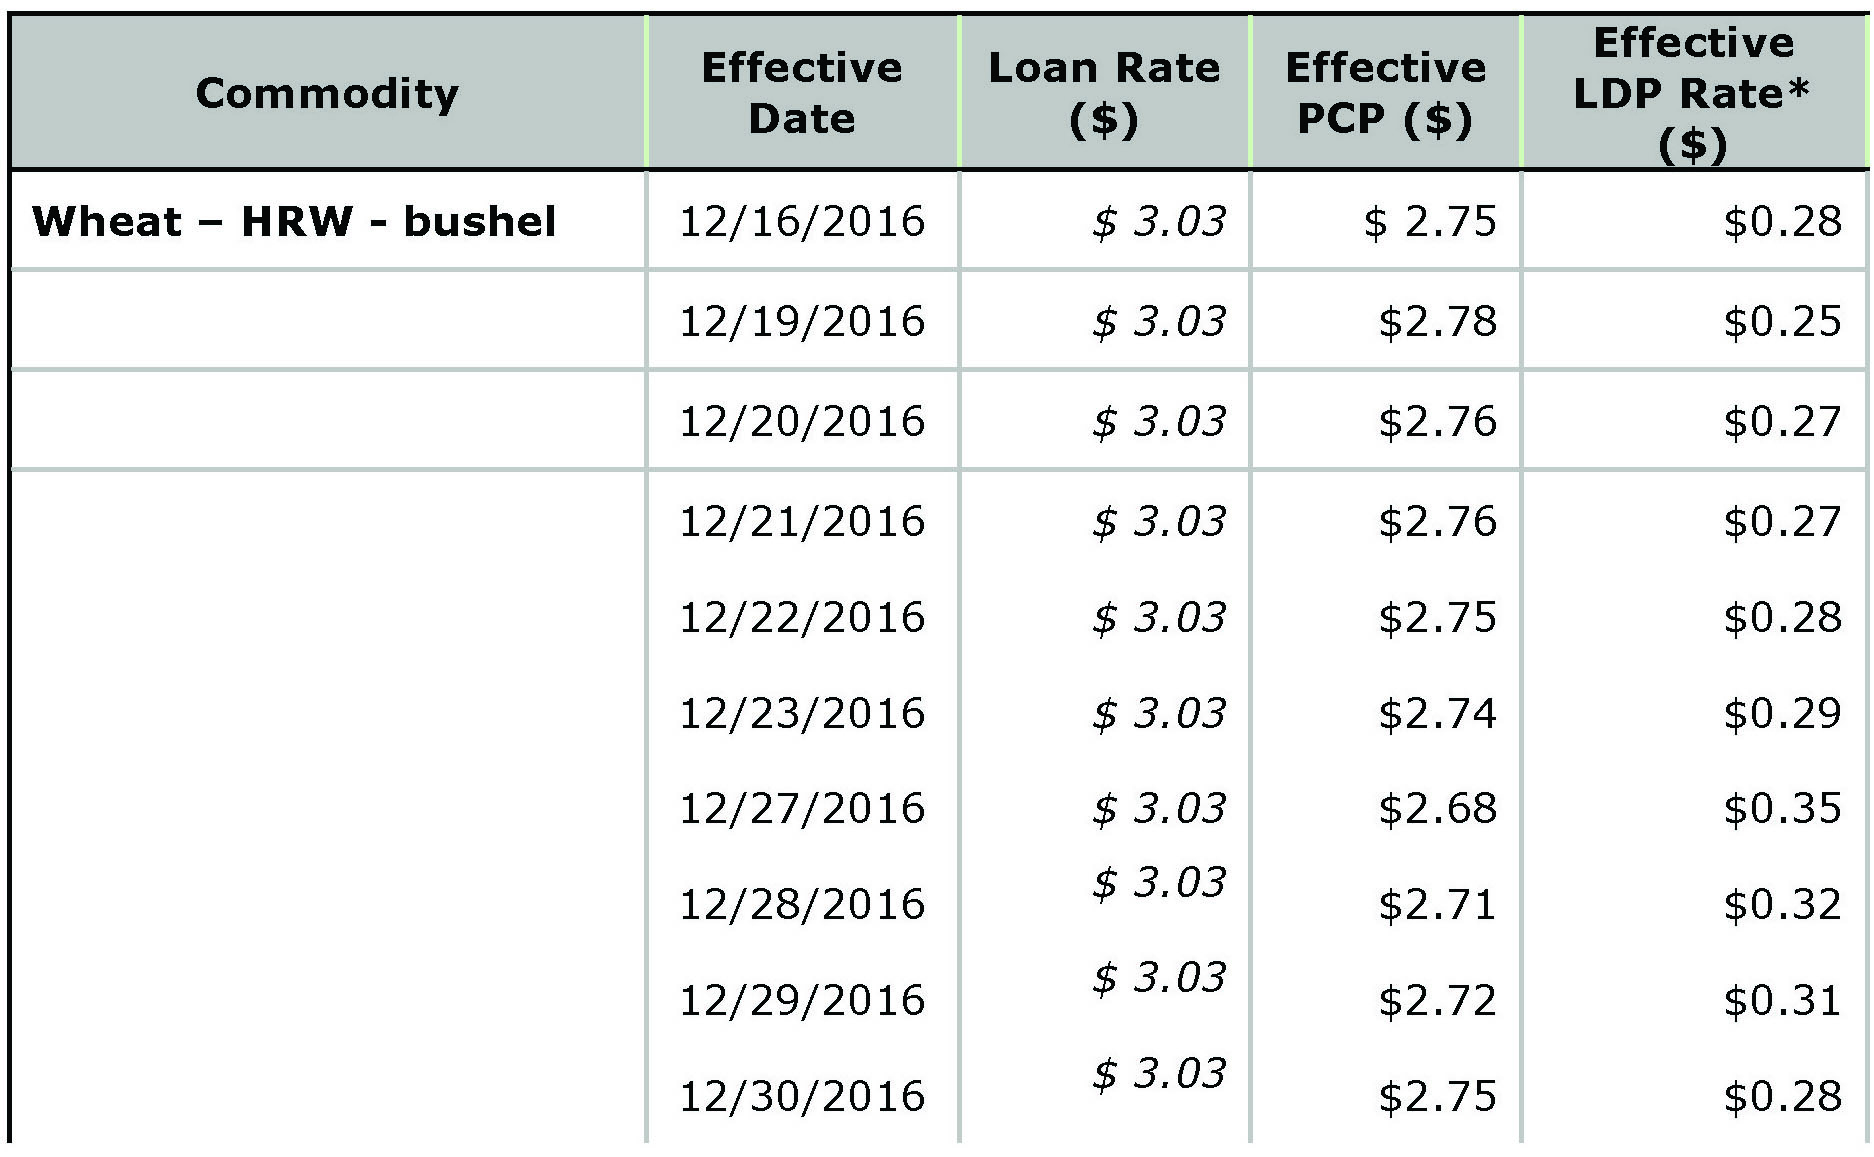 USDA Loan Deficiency Payment - January 6, 2017